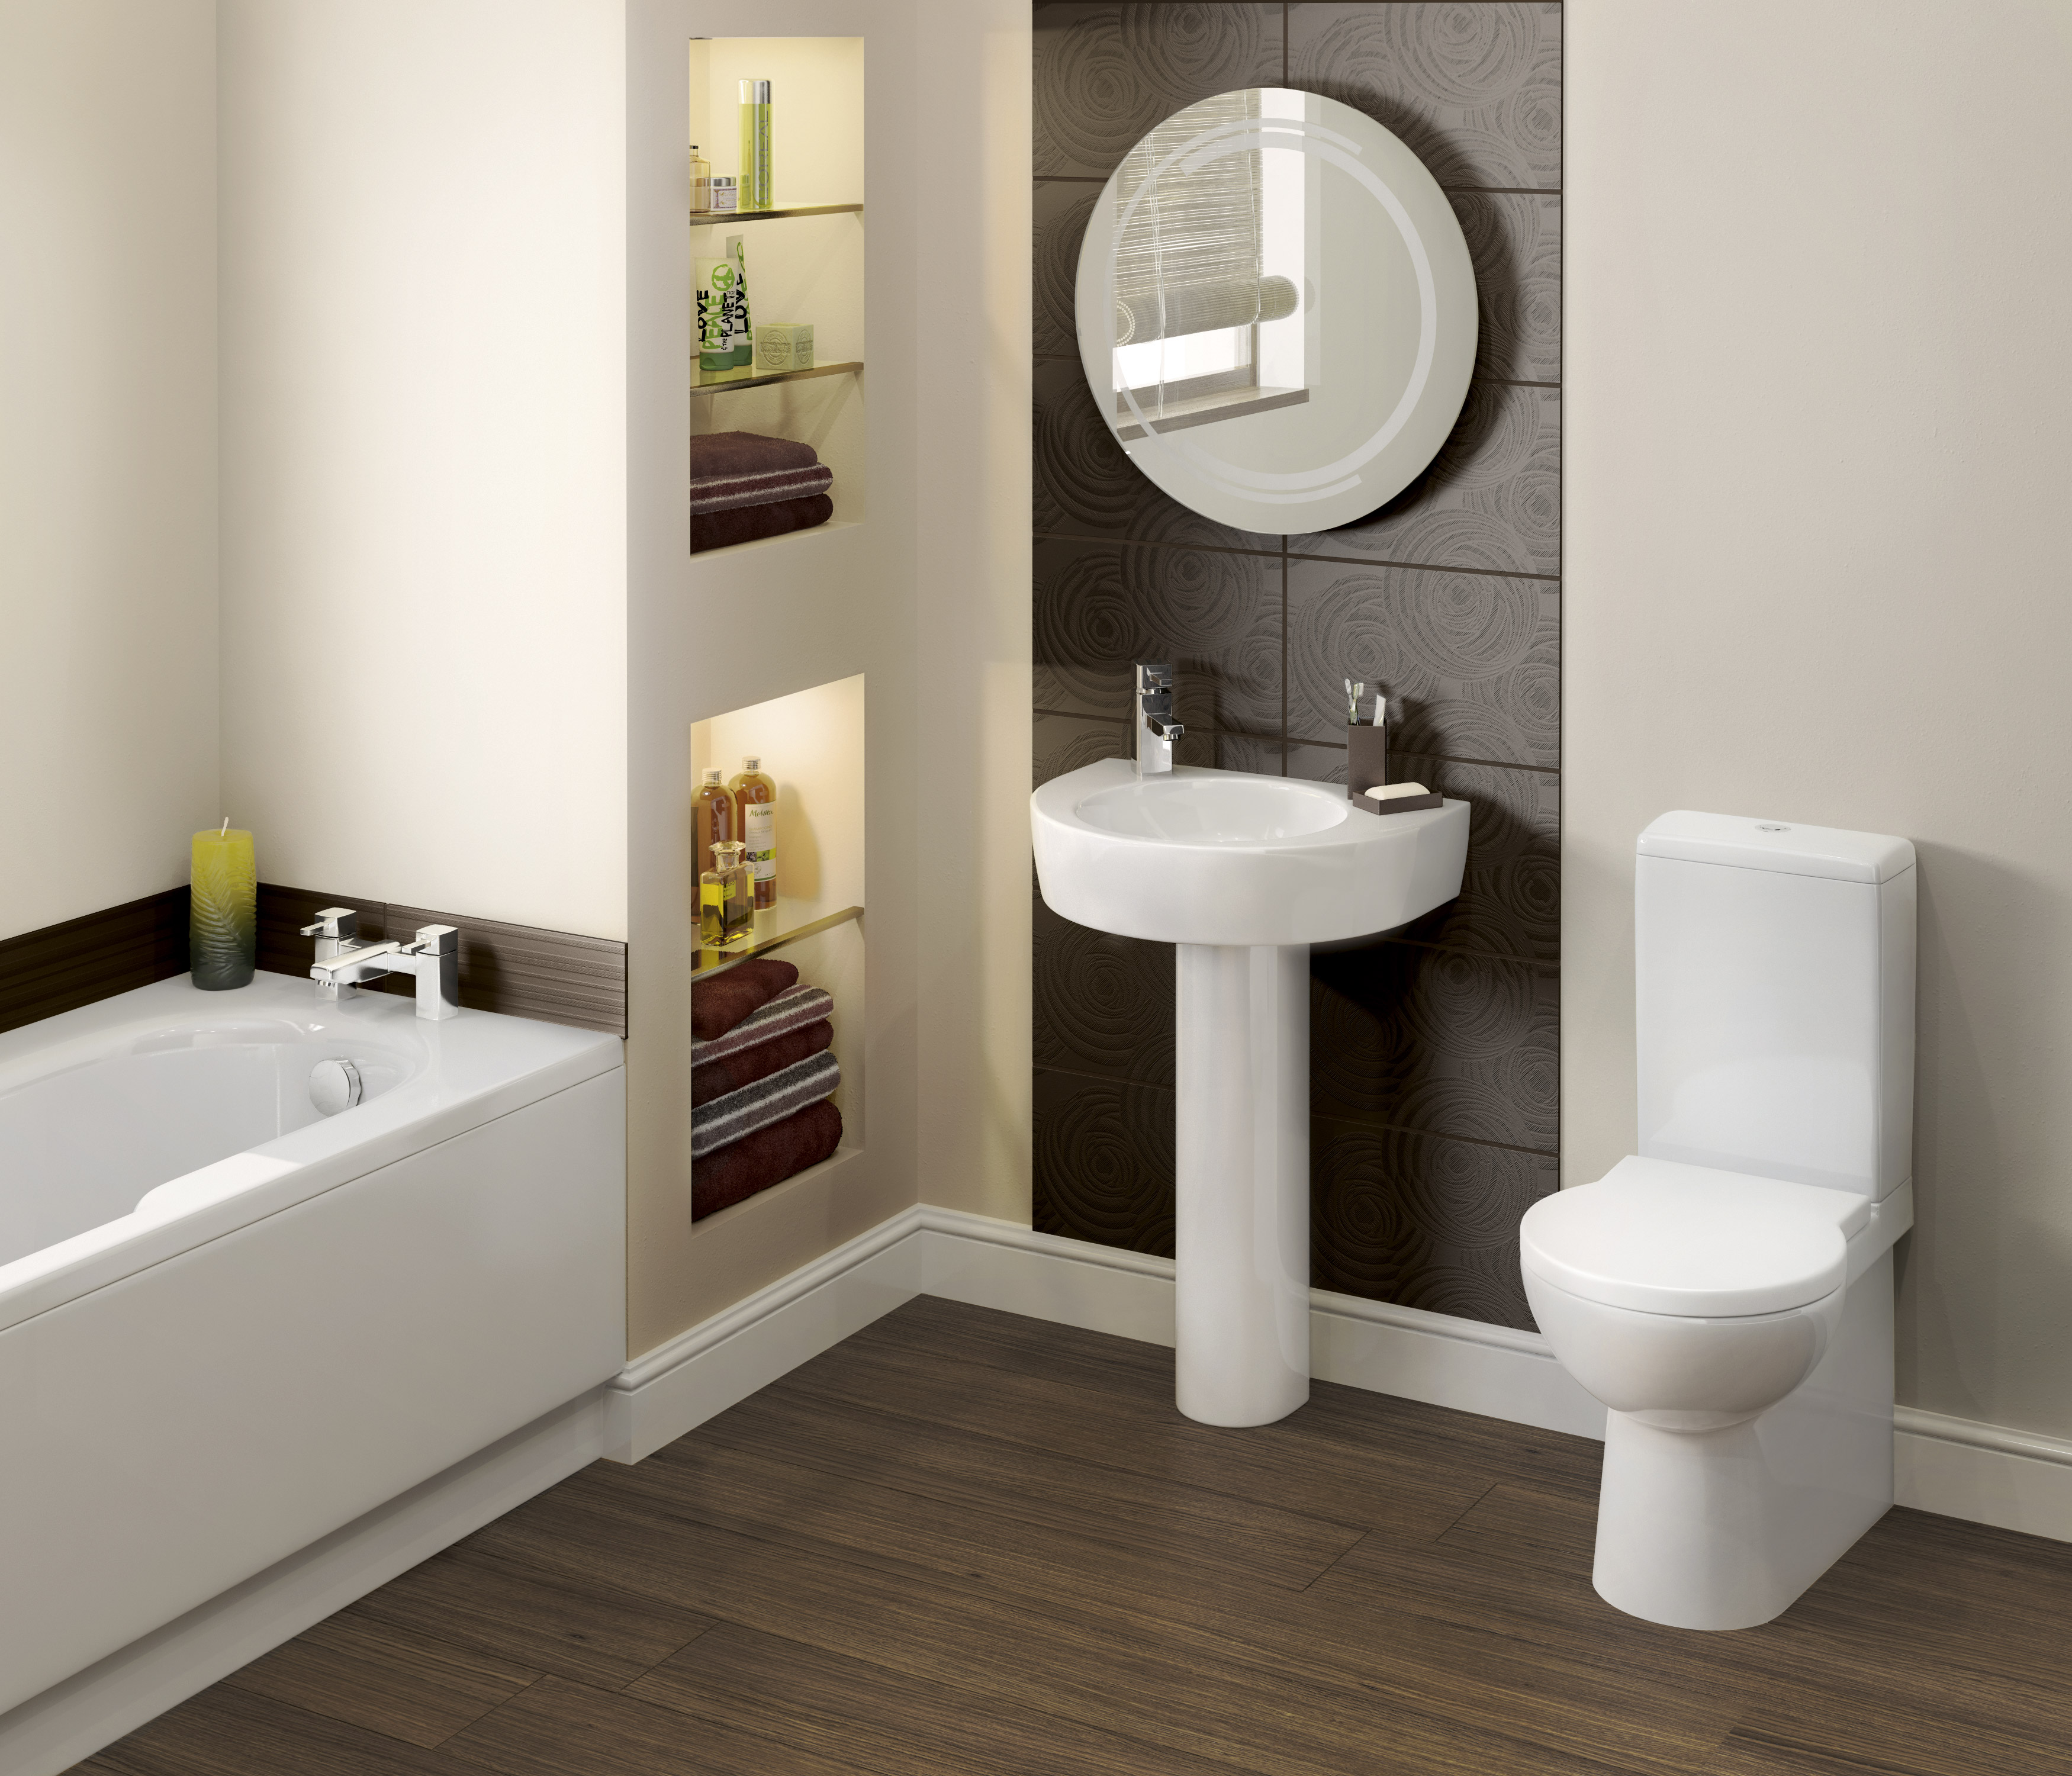 Bathroom design bathroom fitters bristol for Small bathroom images